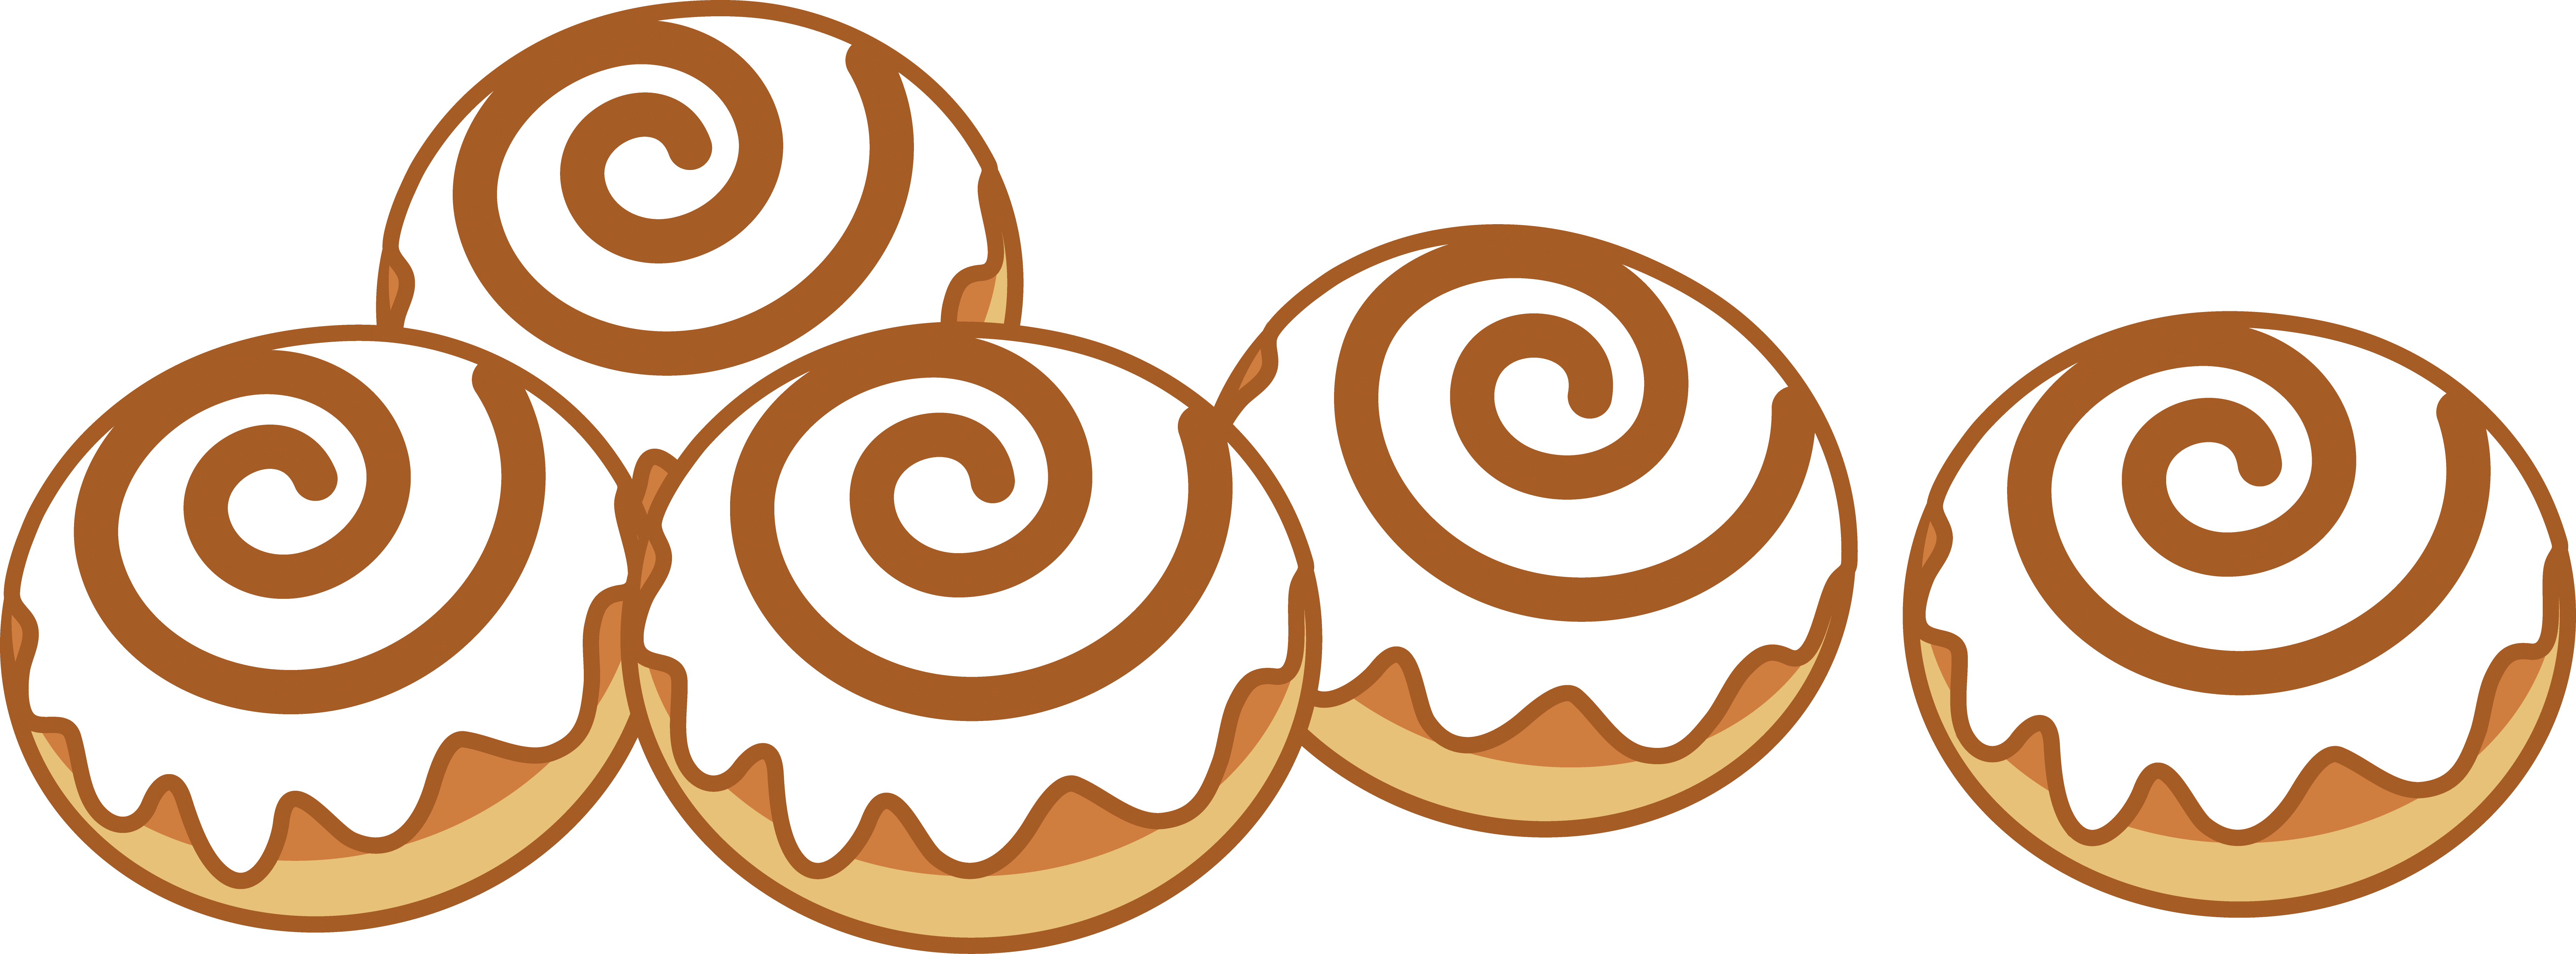 free library Cliparts free download best. Cinnamon roll clipart adorable.